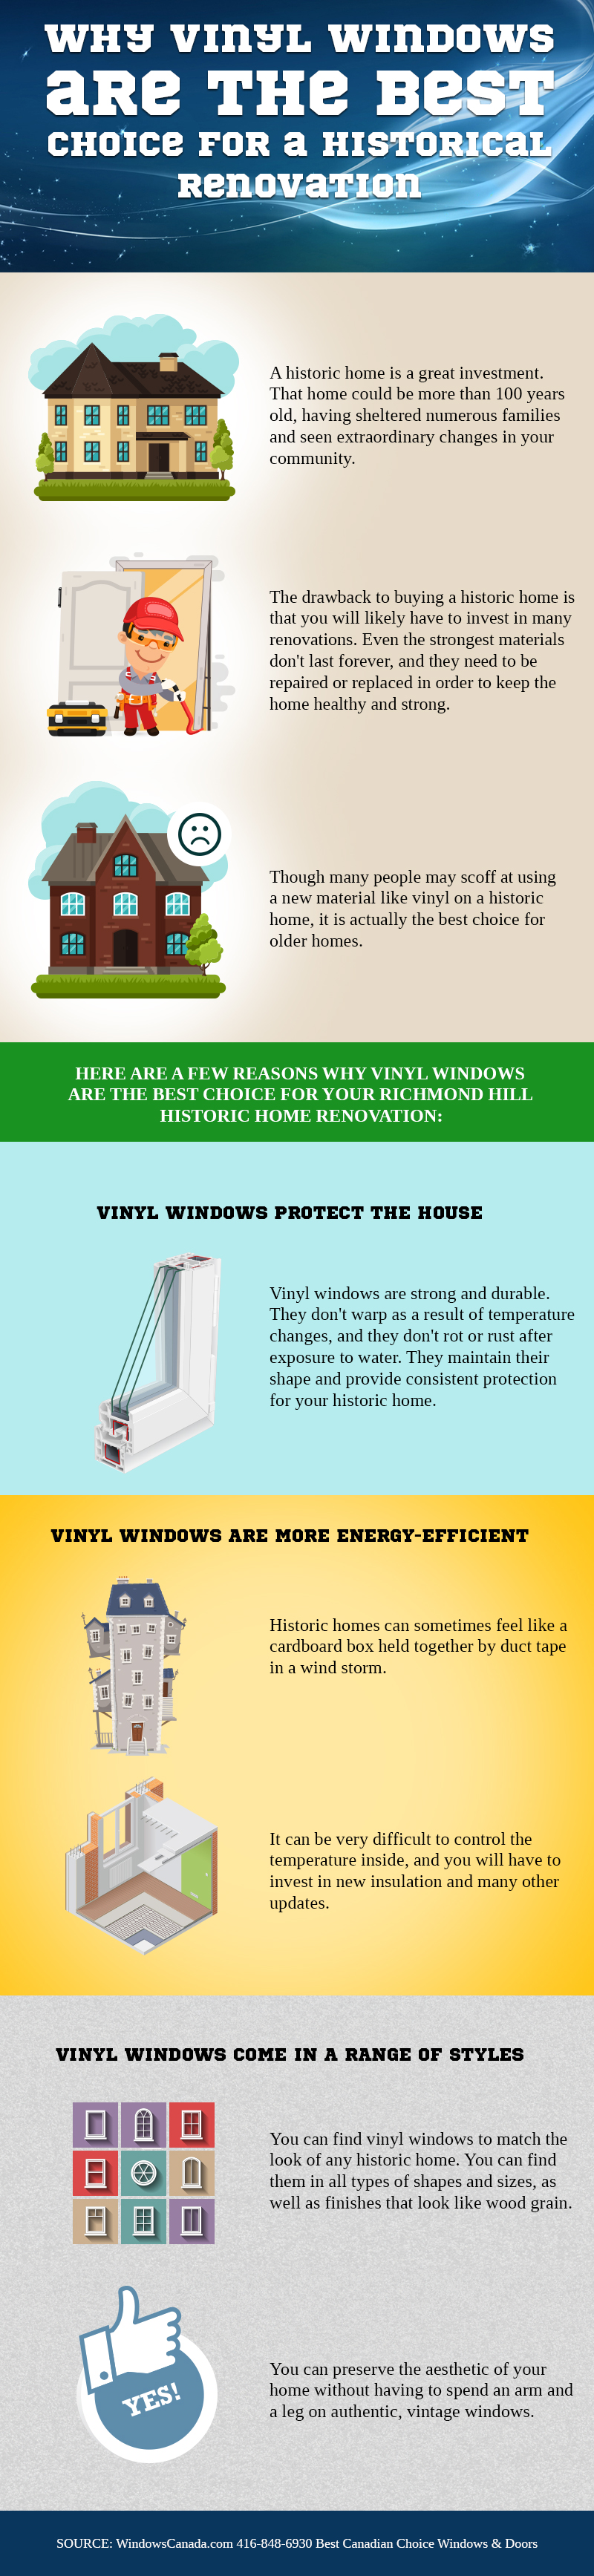 Why Vinyl Windows are the Best Choice for a Historical Renovation